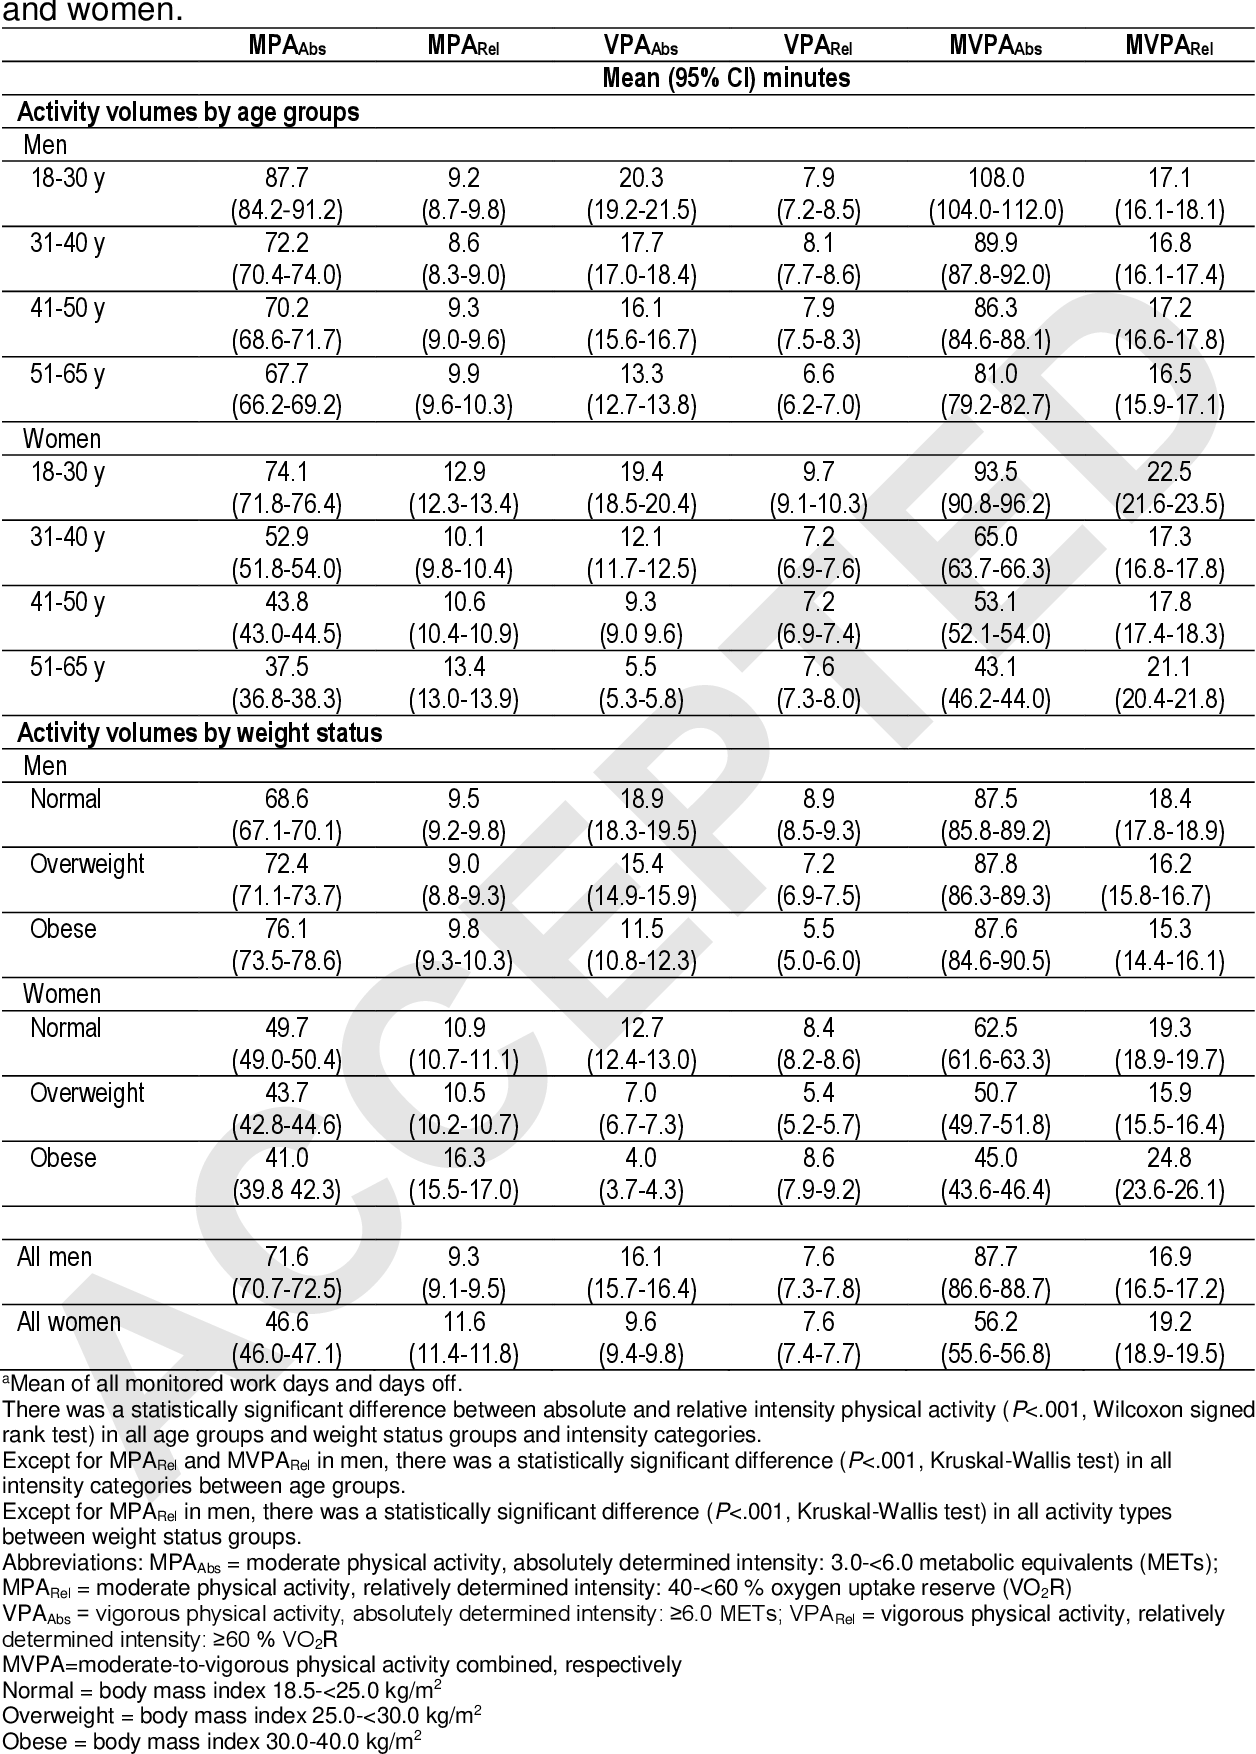 TABLE 2. The Meana daily amount of absolute and relative moderate and vigorous intensity physical activity (min/day) by age groups and by weight status among men and women.